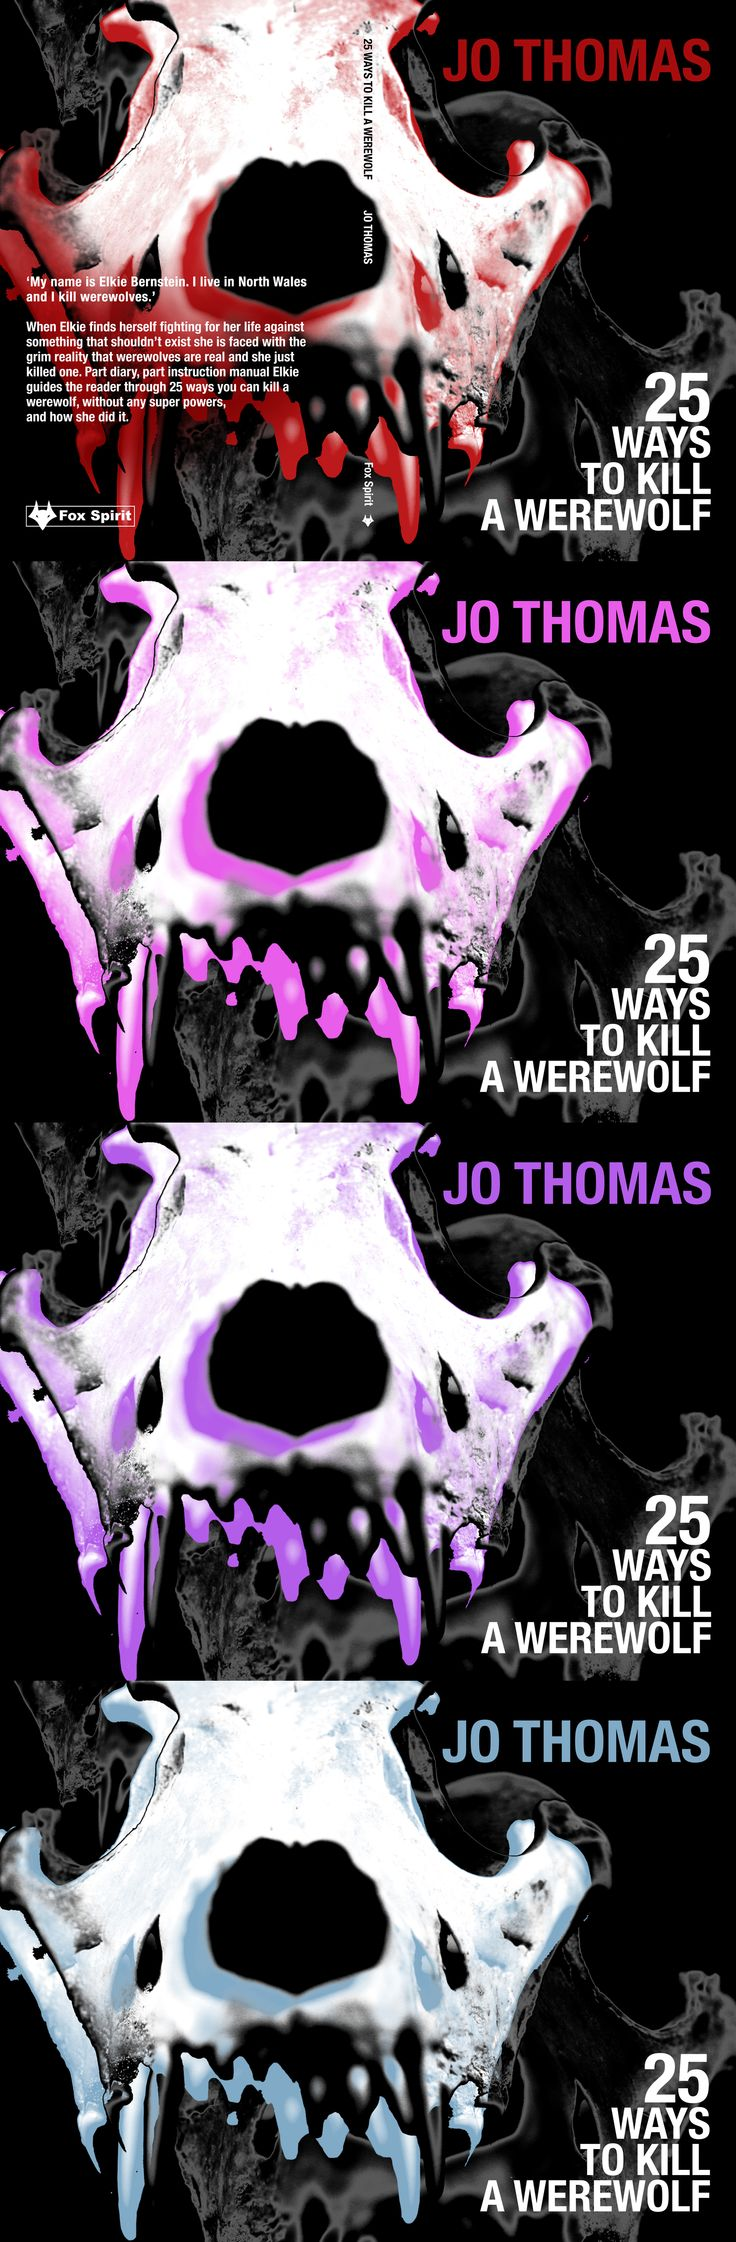 Book cover design for '25 Ways To Kill A Werewolf' by Jo Thomas for Fox Spirit.